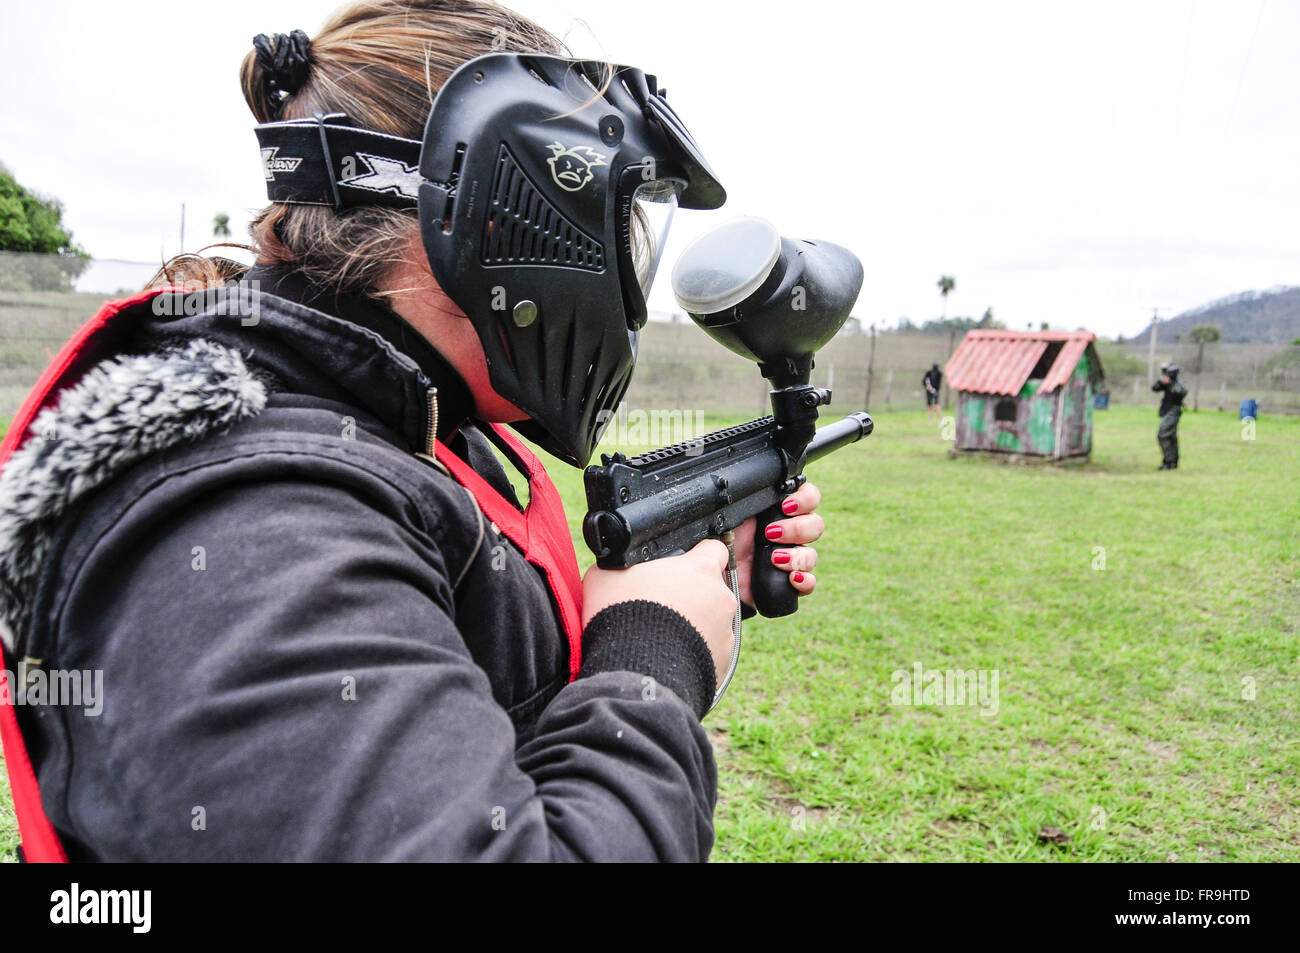 Paintball - combat sport team with gun that shoots balls of colored ink - Stock Image